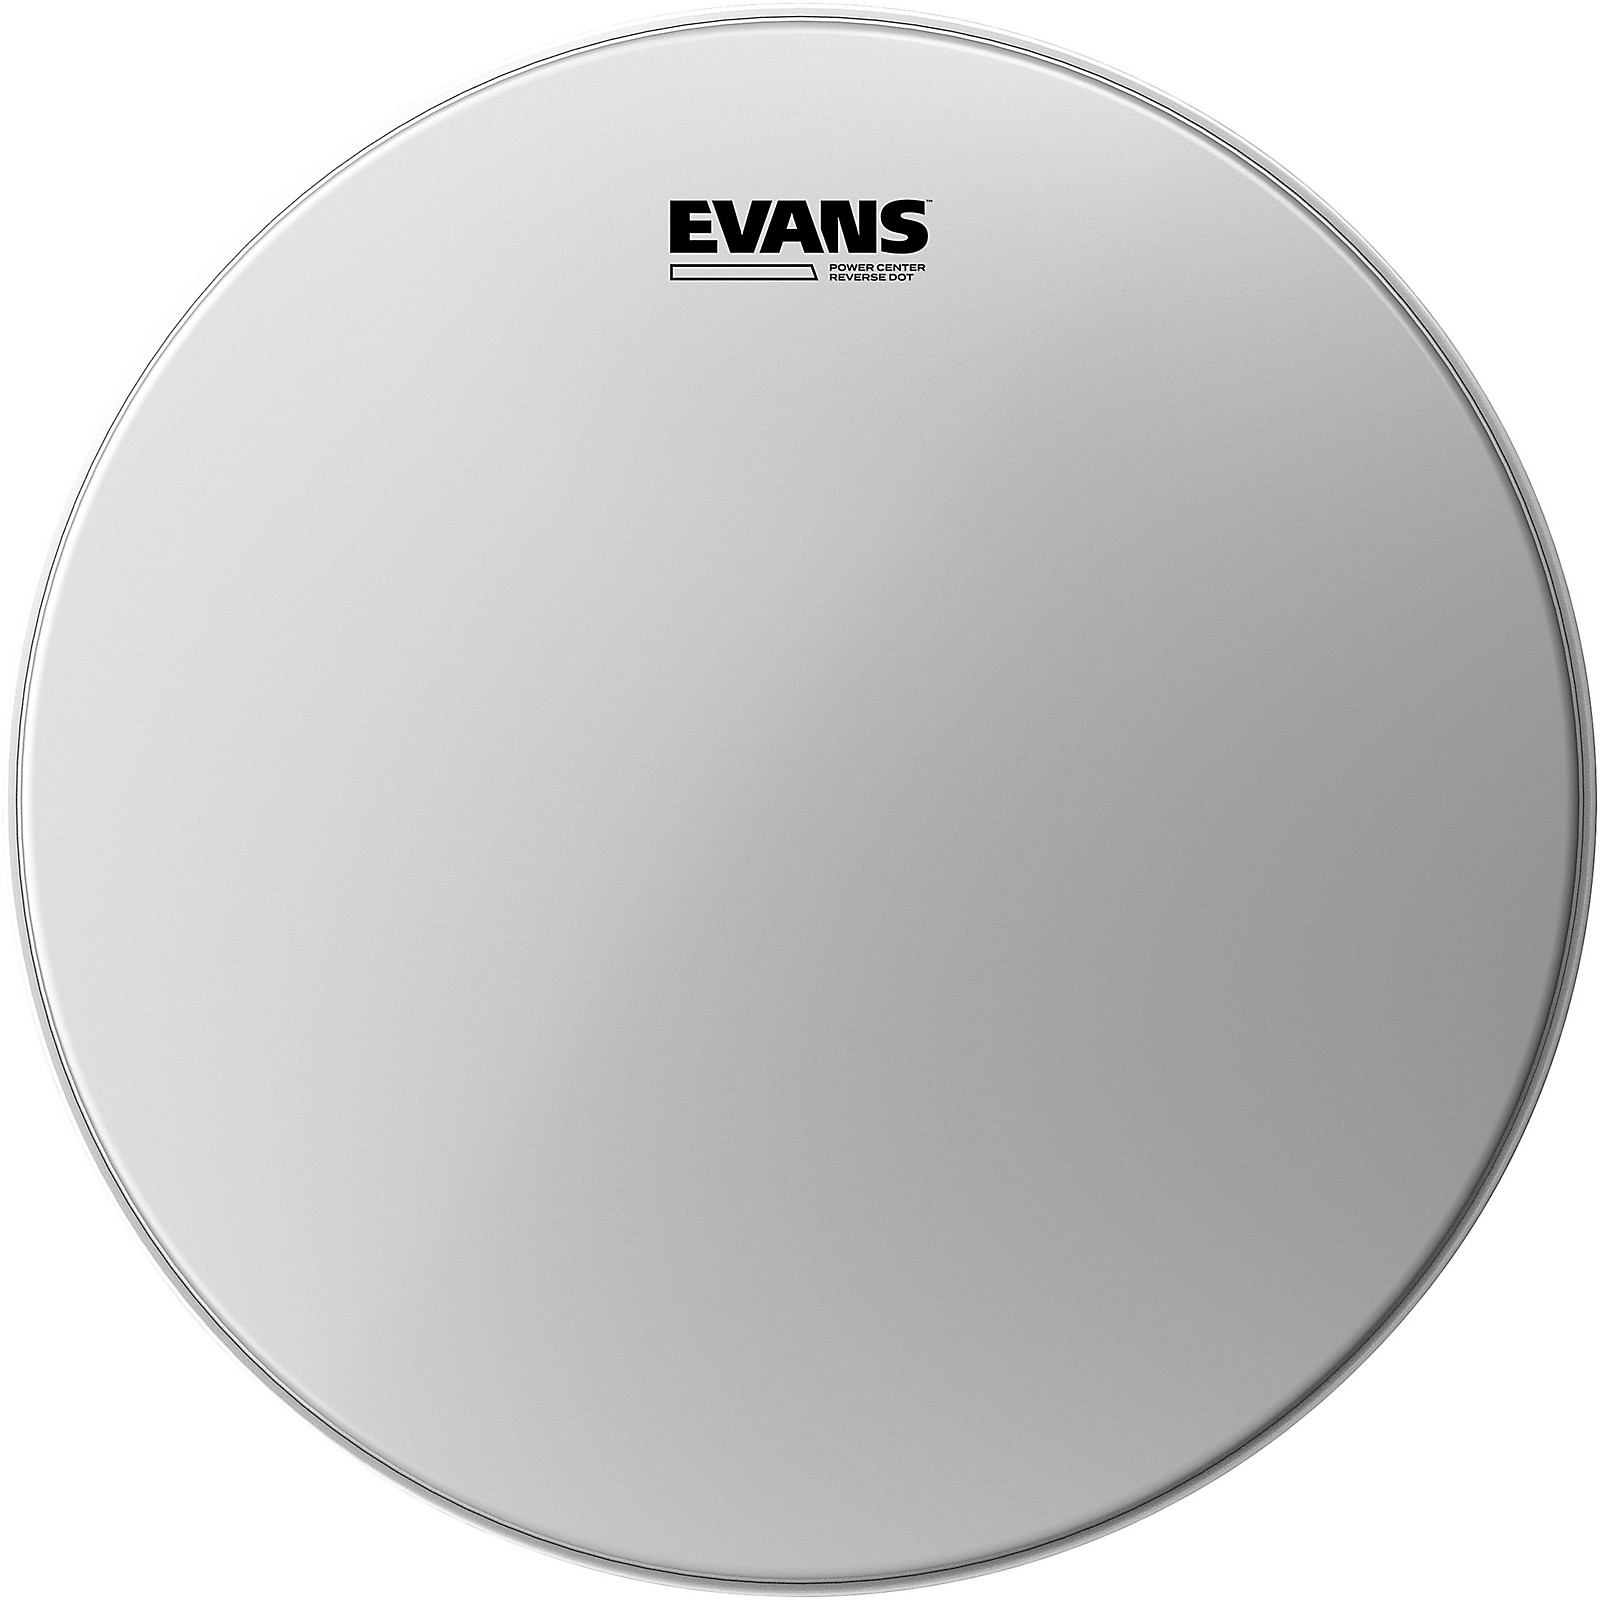 Evans Power Center Reverse Dot Head